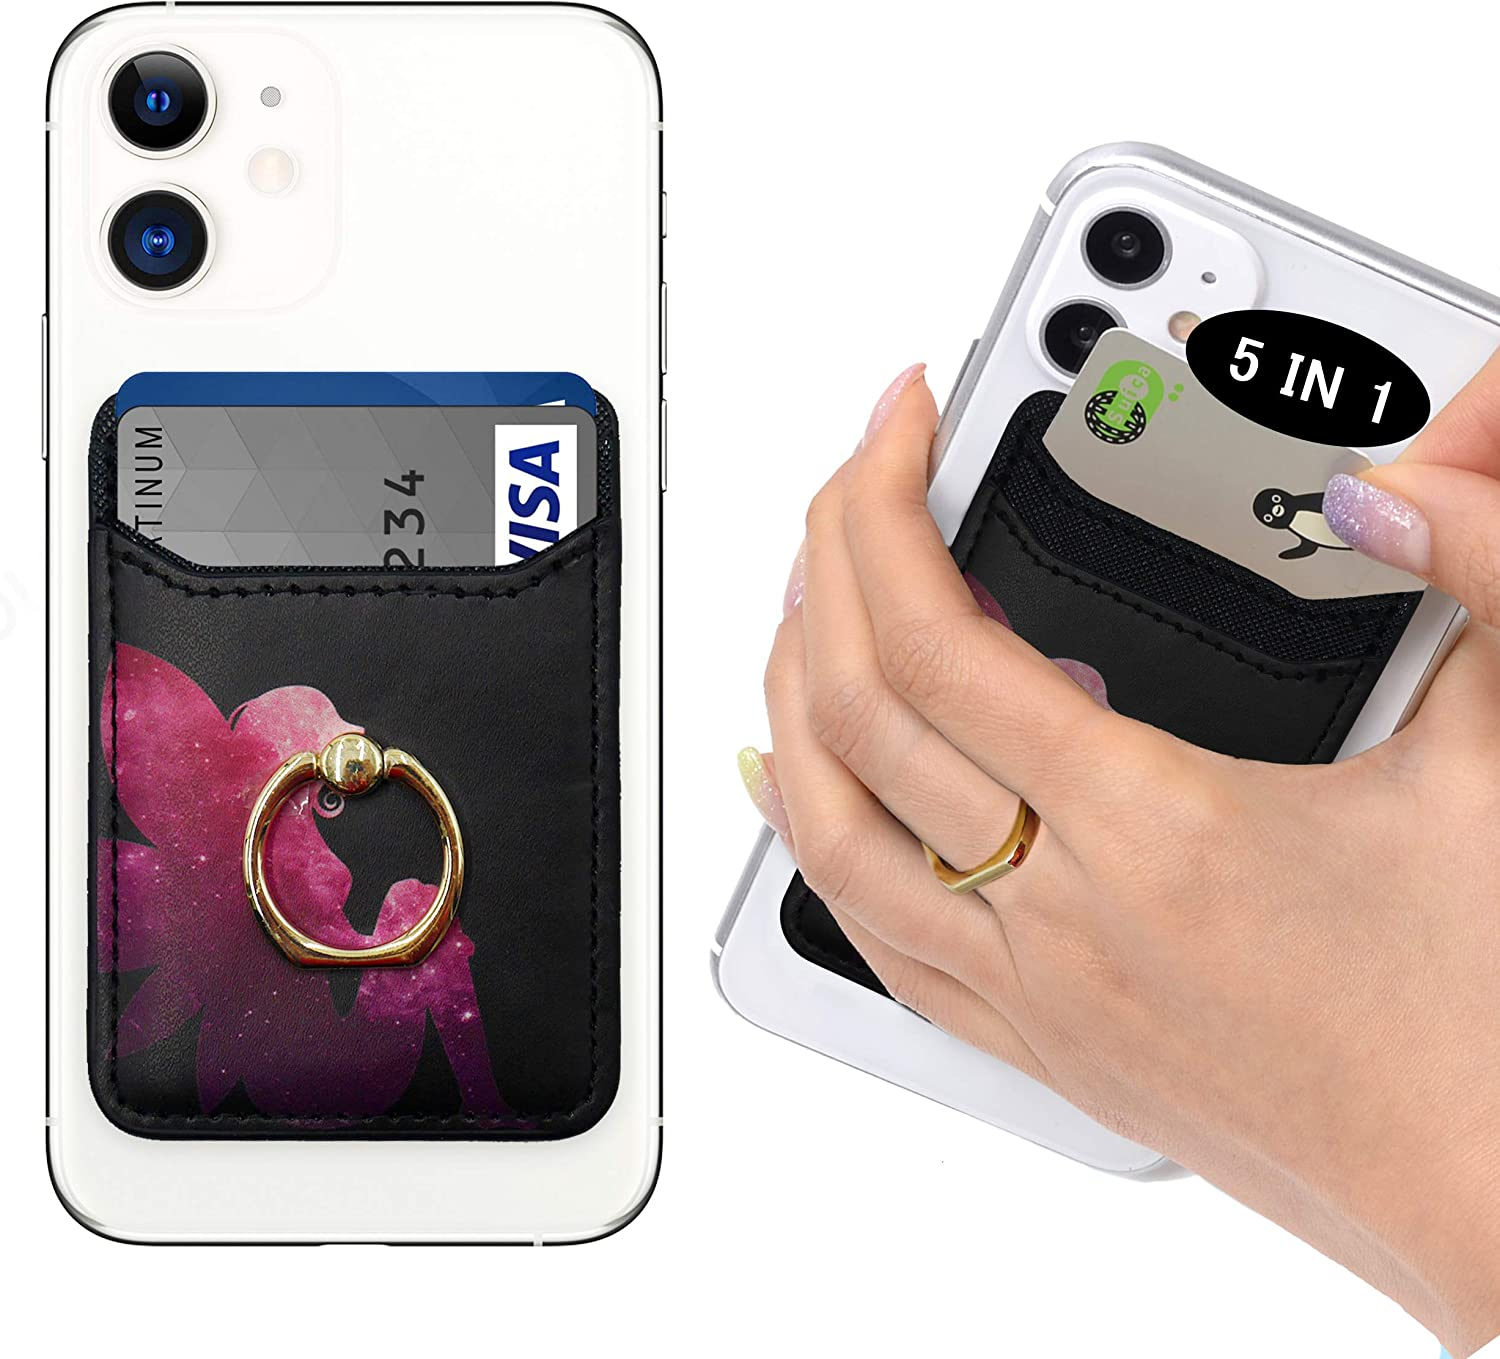 POLIFALL Leather Phone Card Holder (Fairy) 5 in 1 Stick On Wallet Sleeve Back - Double Pocket + Finger Ring Stand + Metal Plate for Magnet Mount + RFID Block for iPhone, Galaxy,Android,Mobile